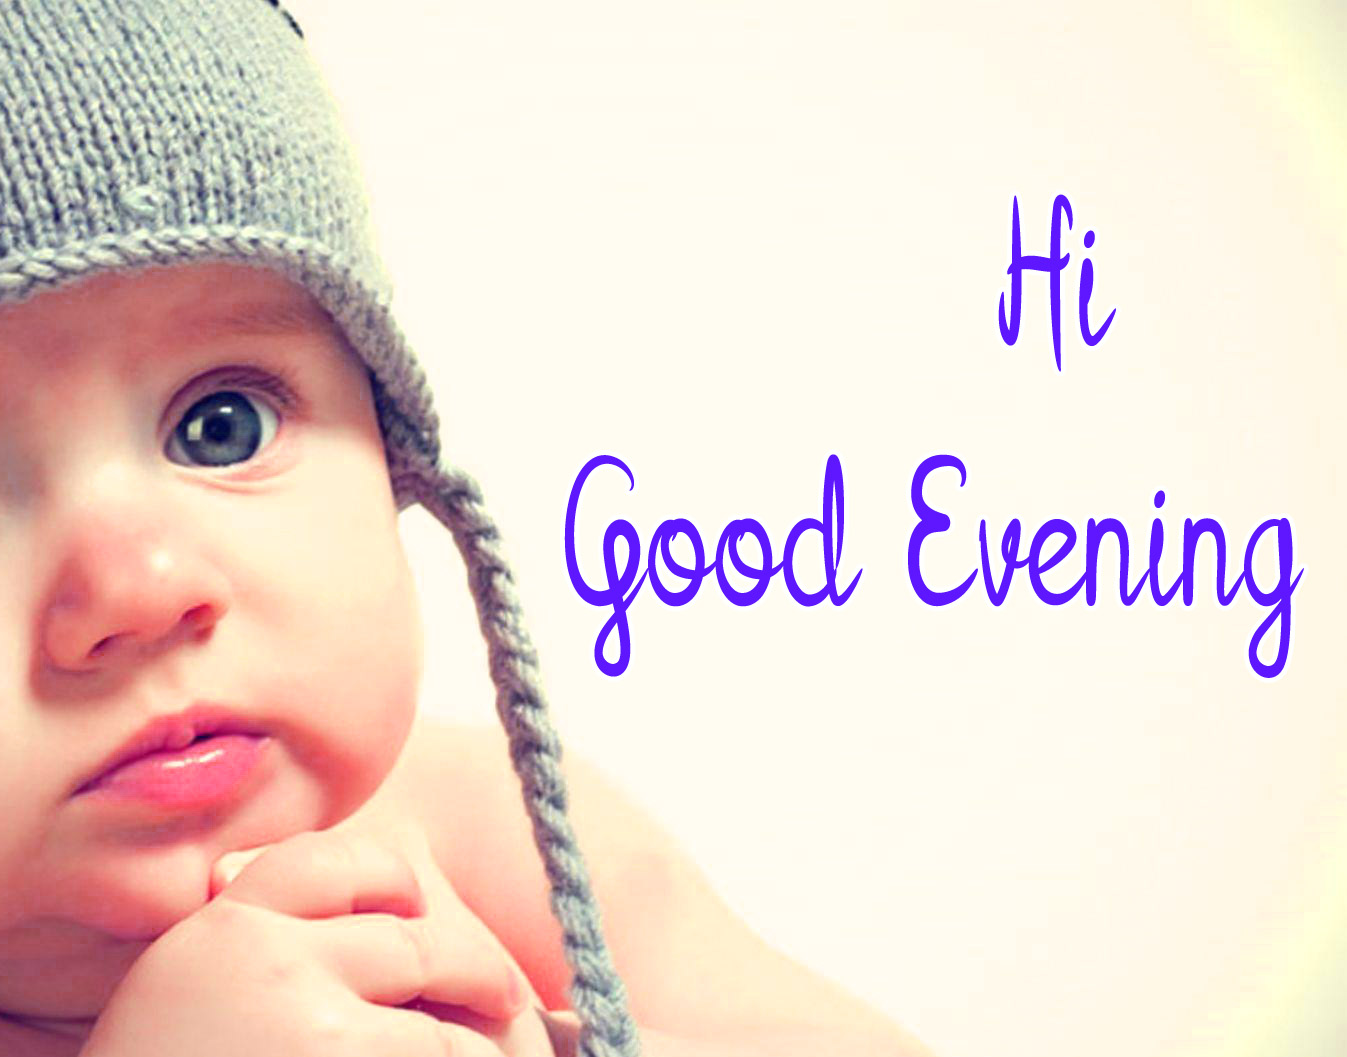 good evening images with cute baby 10